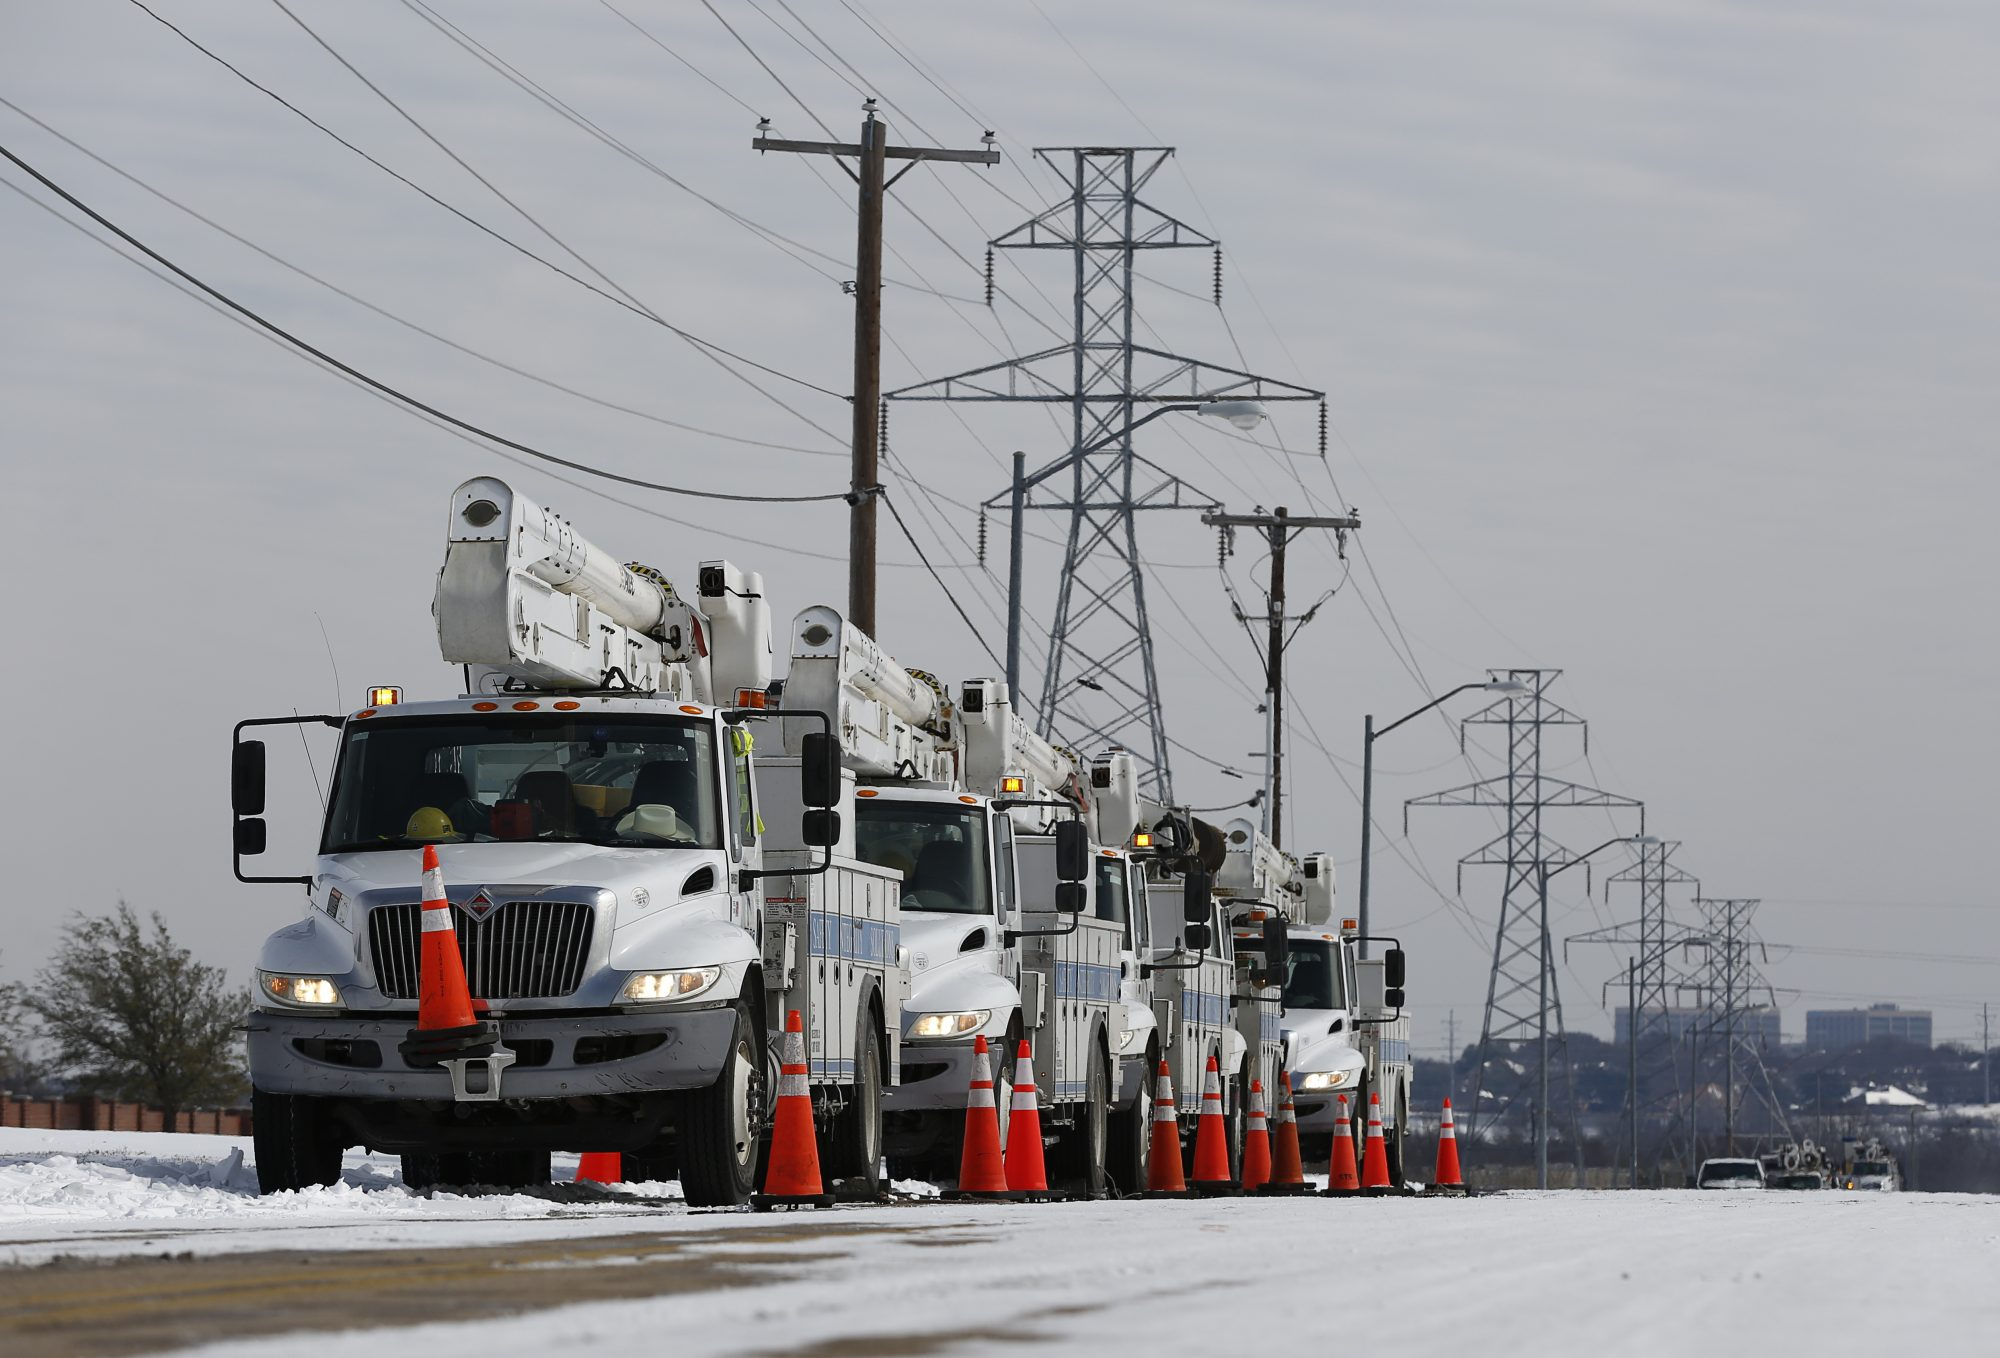 Electric Utility trucks are parked in the snow along the street